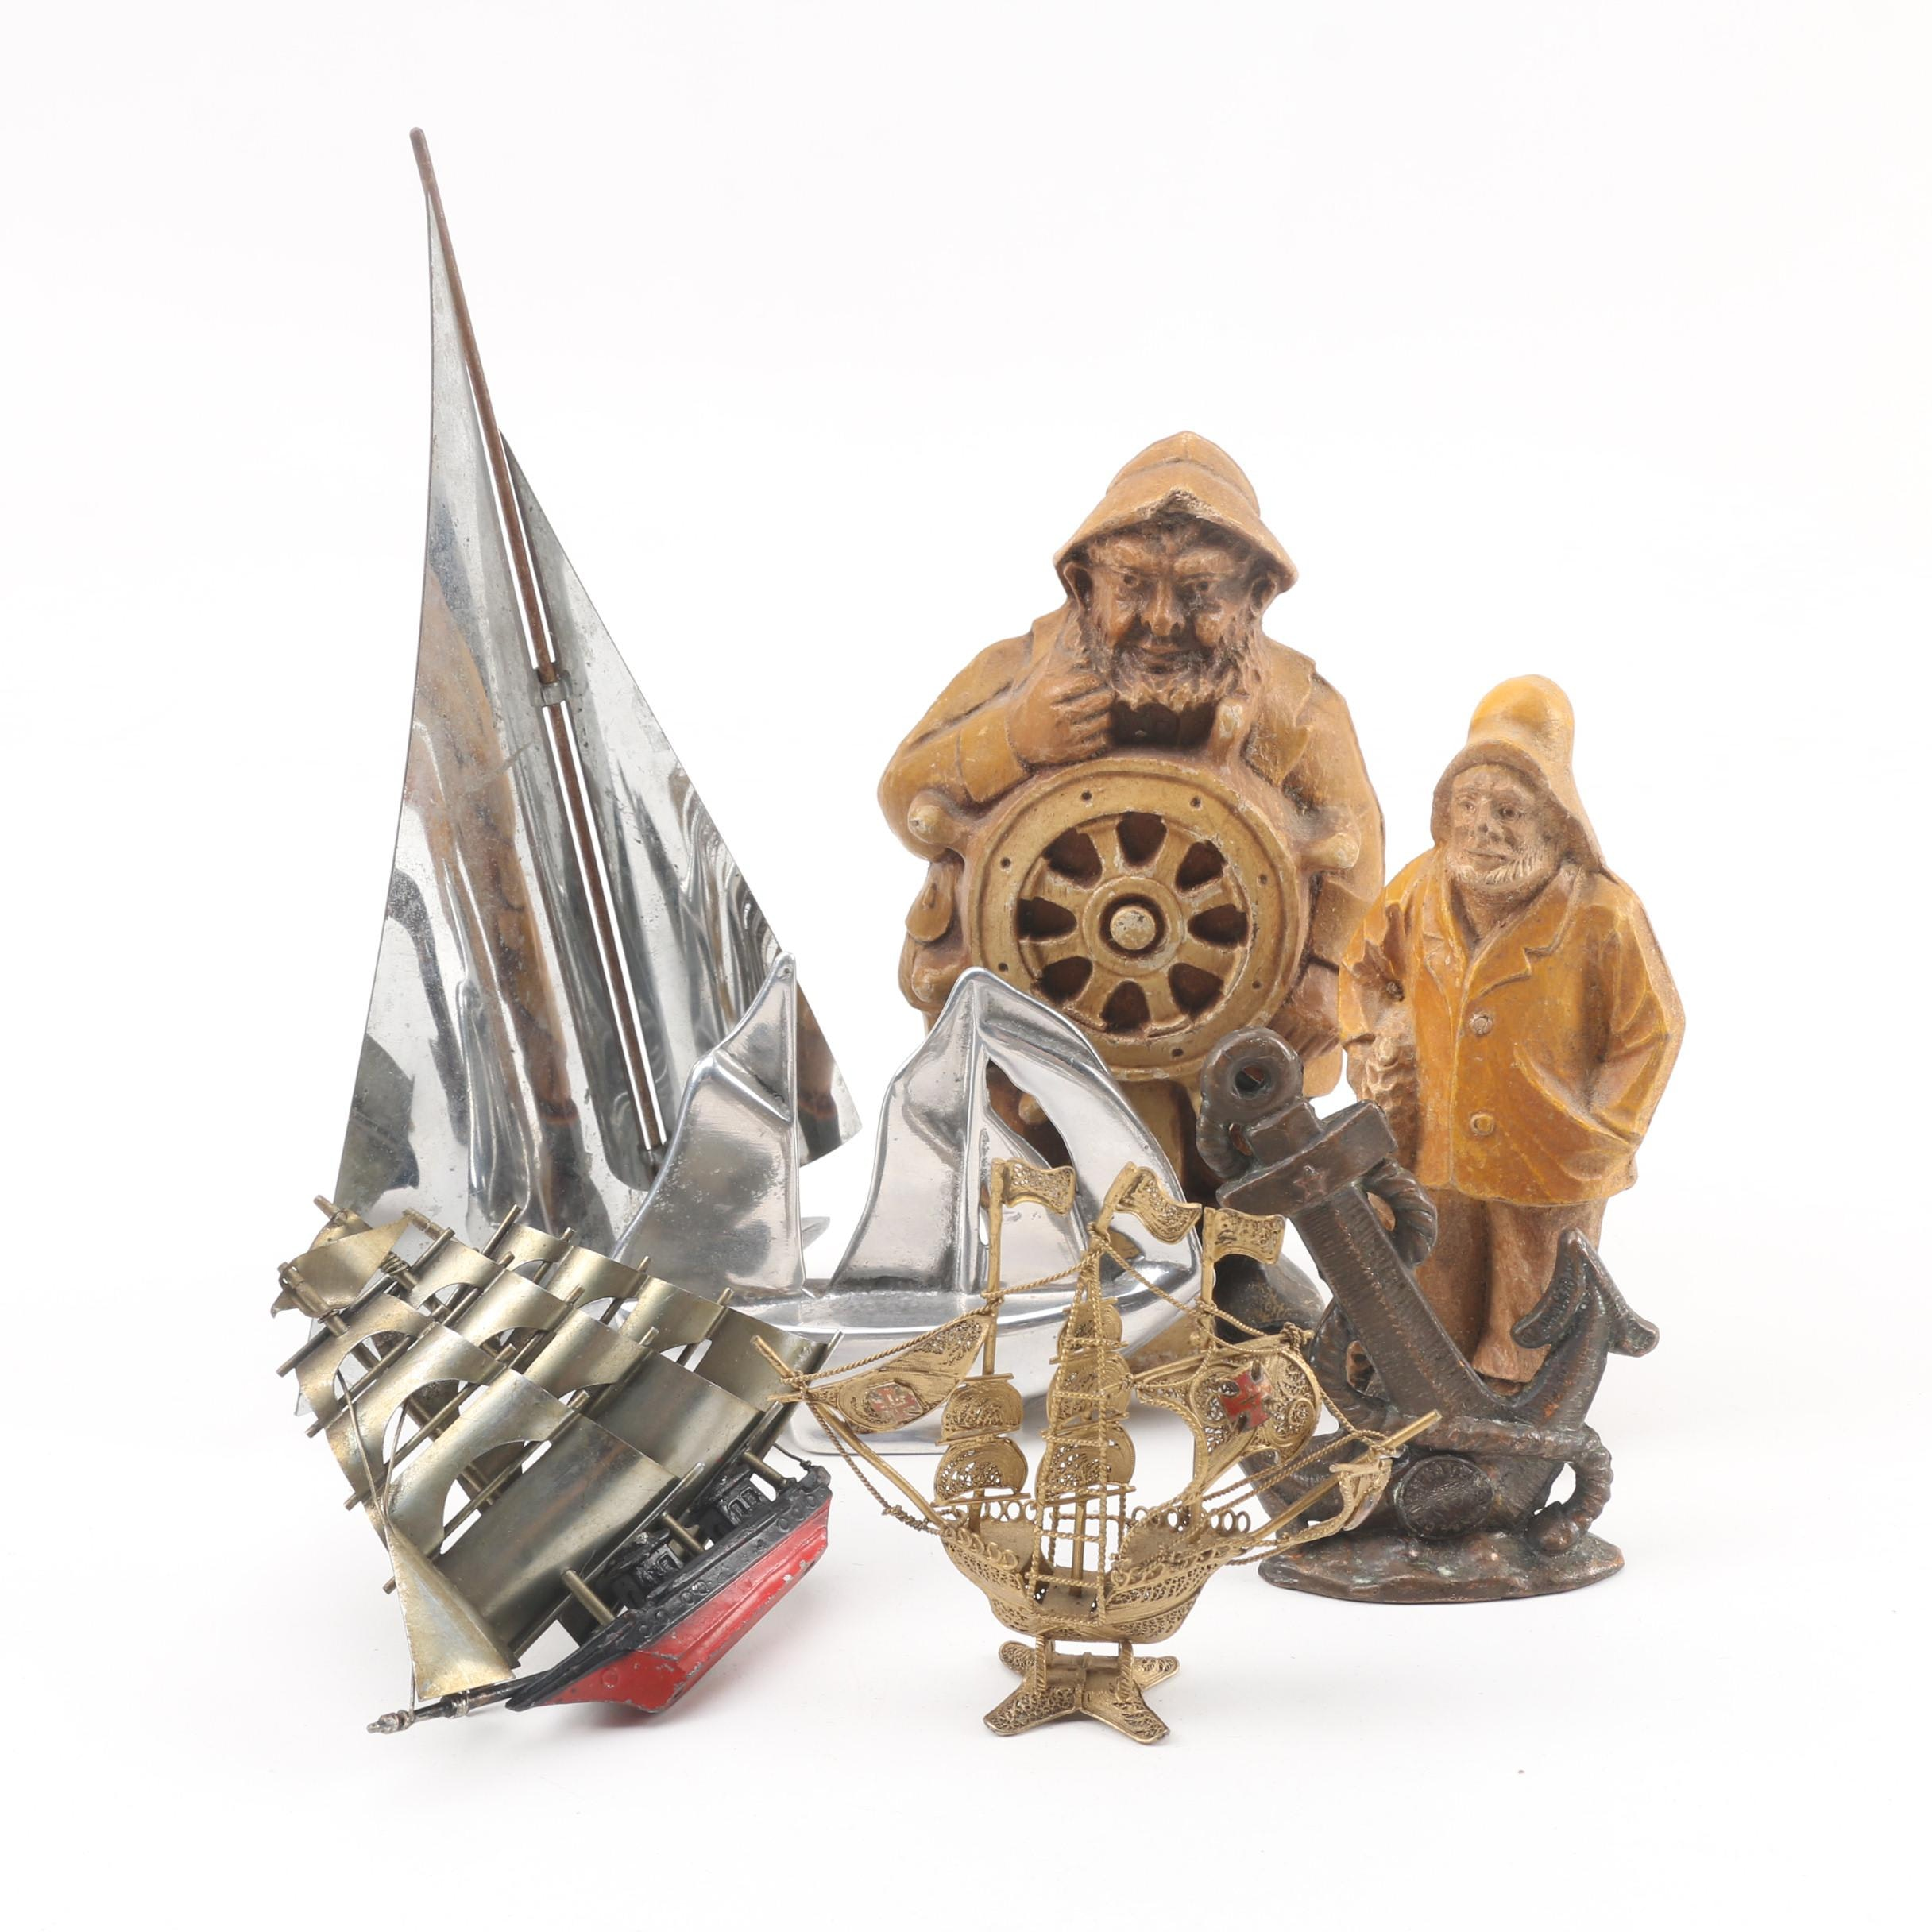 Vintage Maritime Themed Table Decor